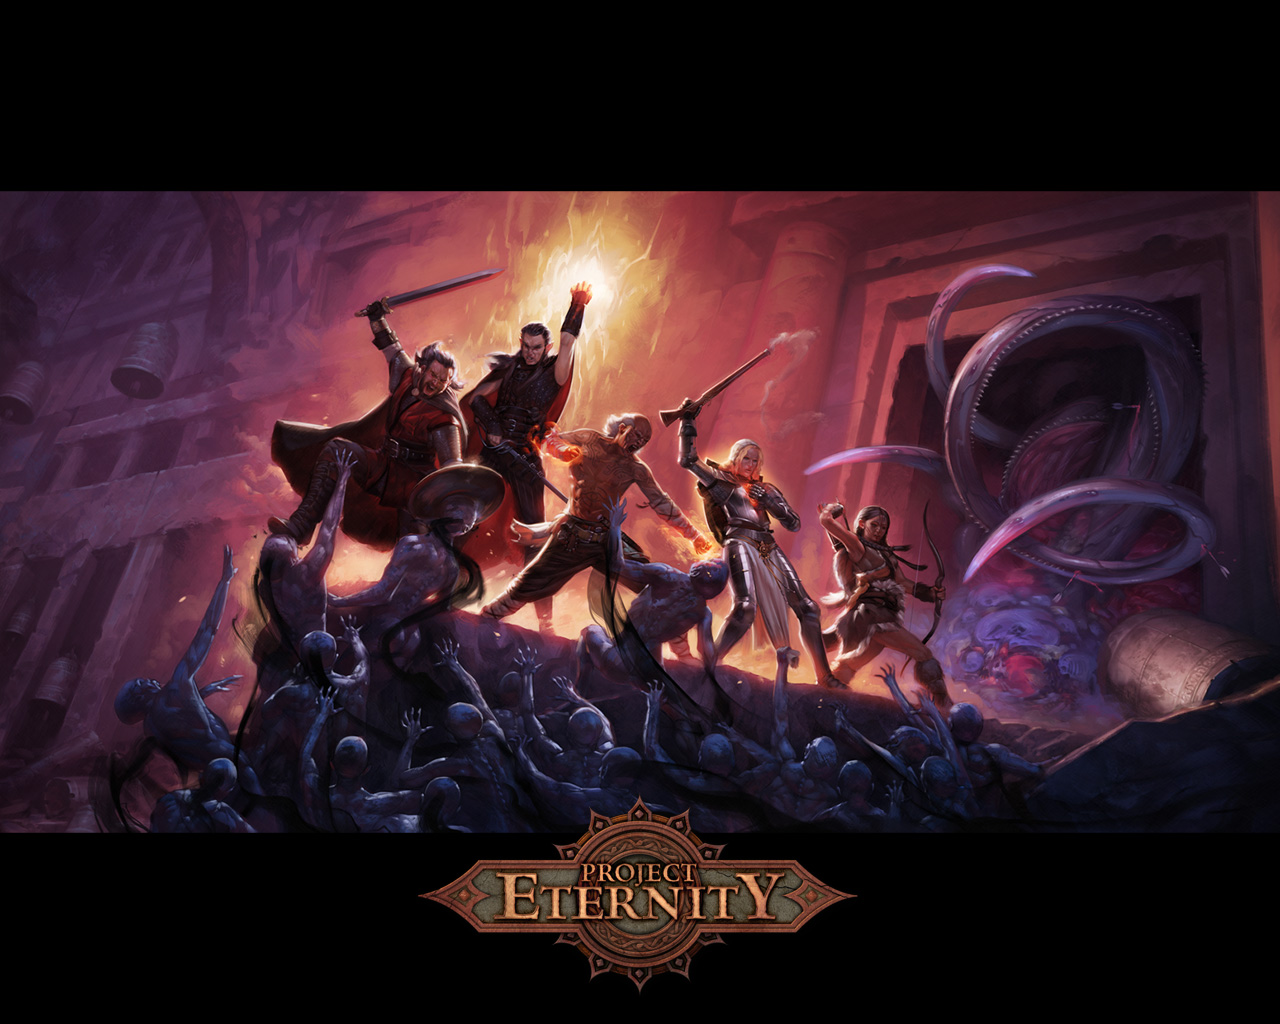 http://media.obsidian.net/eternity/media/wallpapers/wallpaper001/wallpaper001-1280x1024.jpg